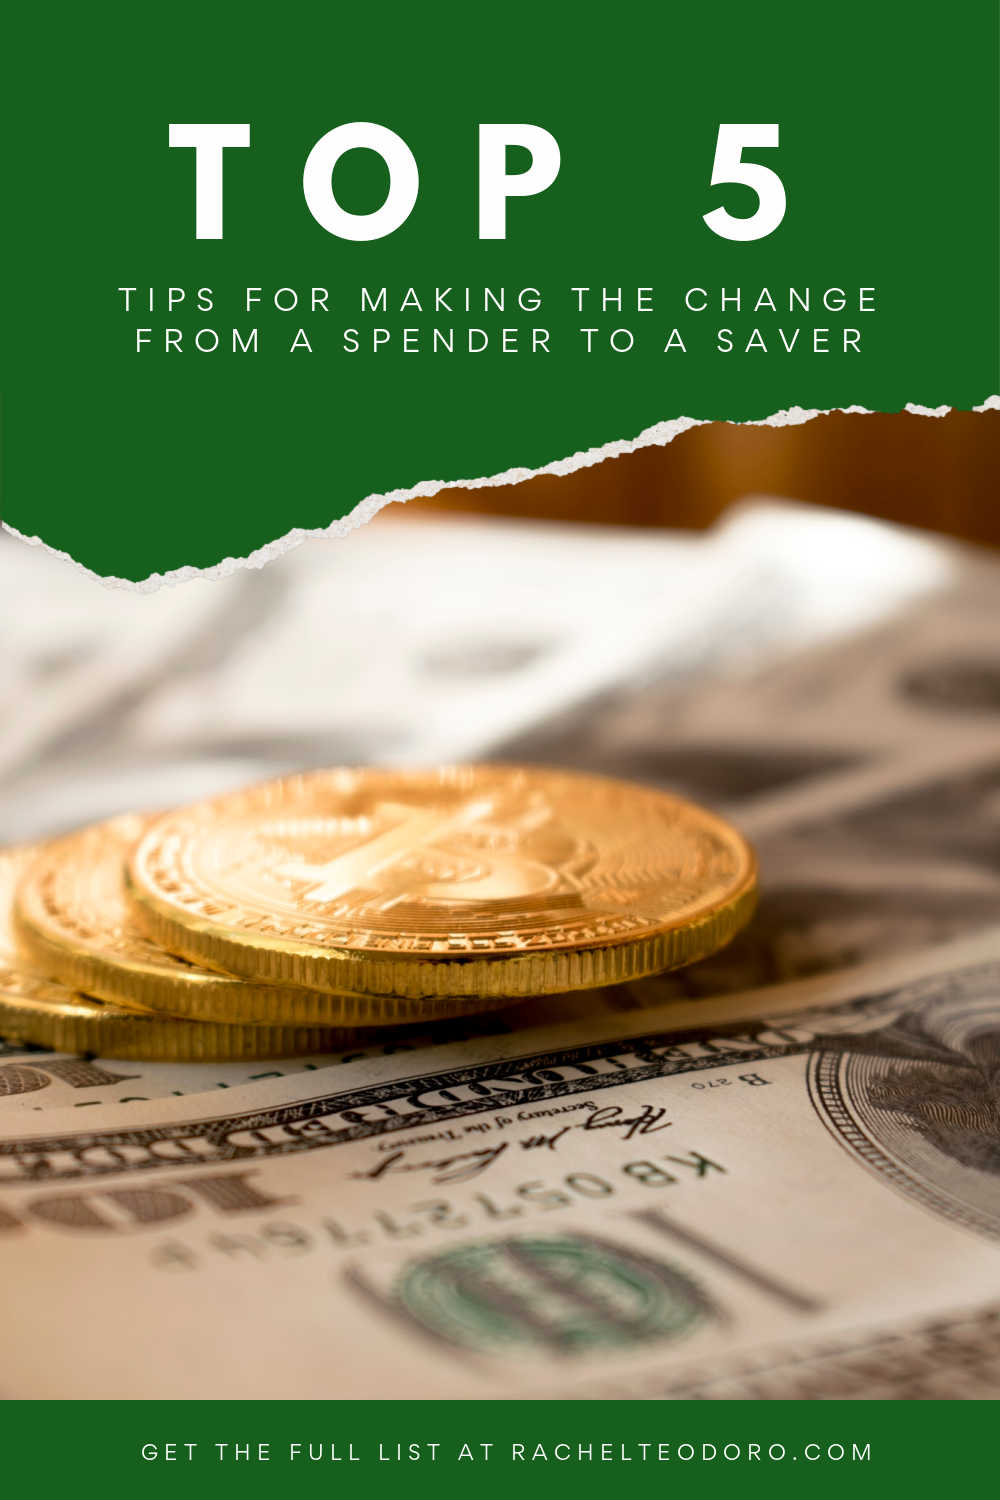 SPEND TO SAVE TIPS